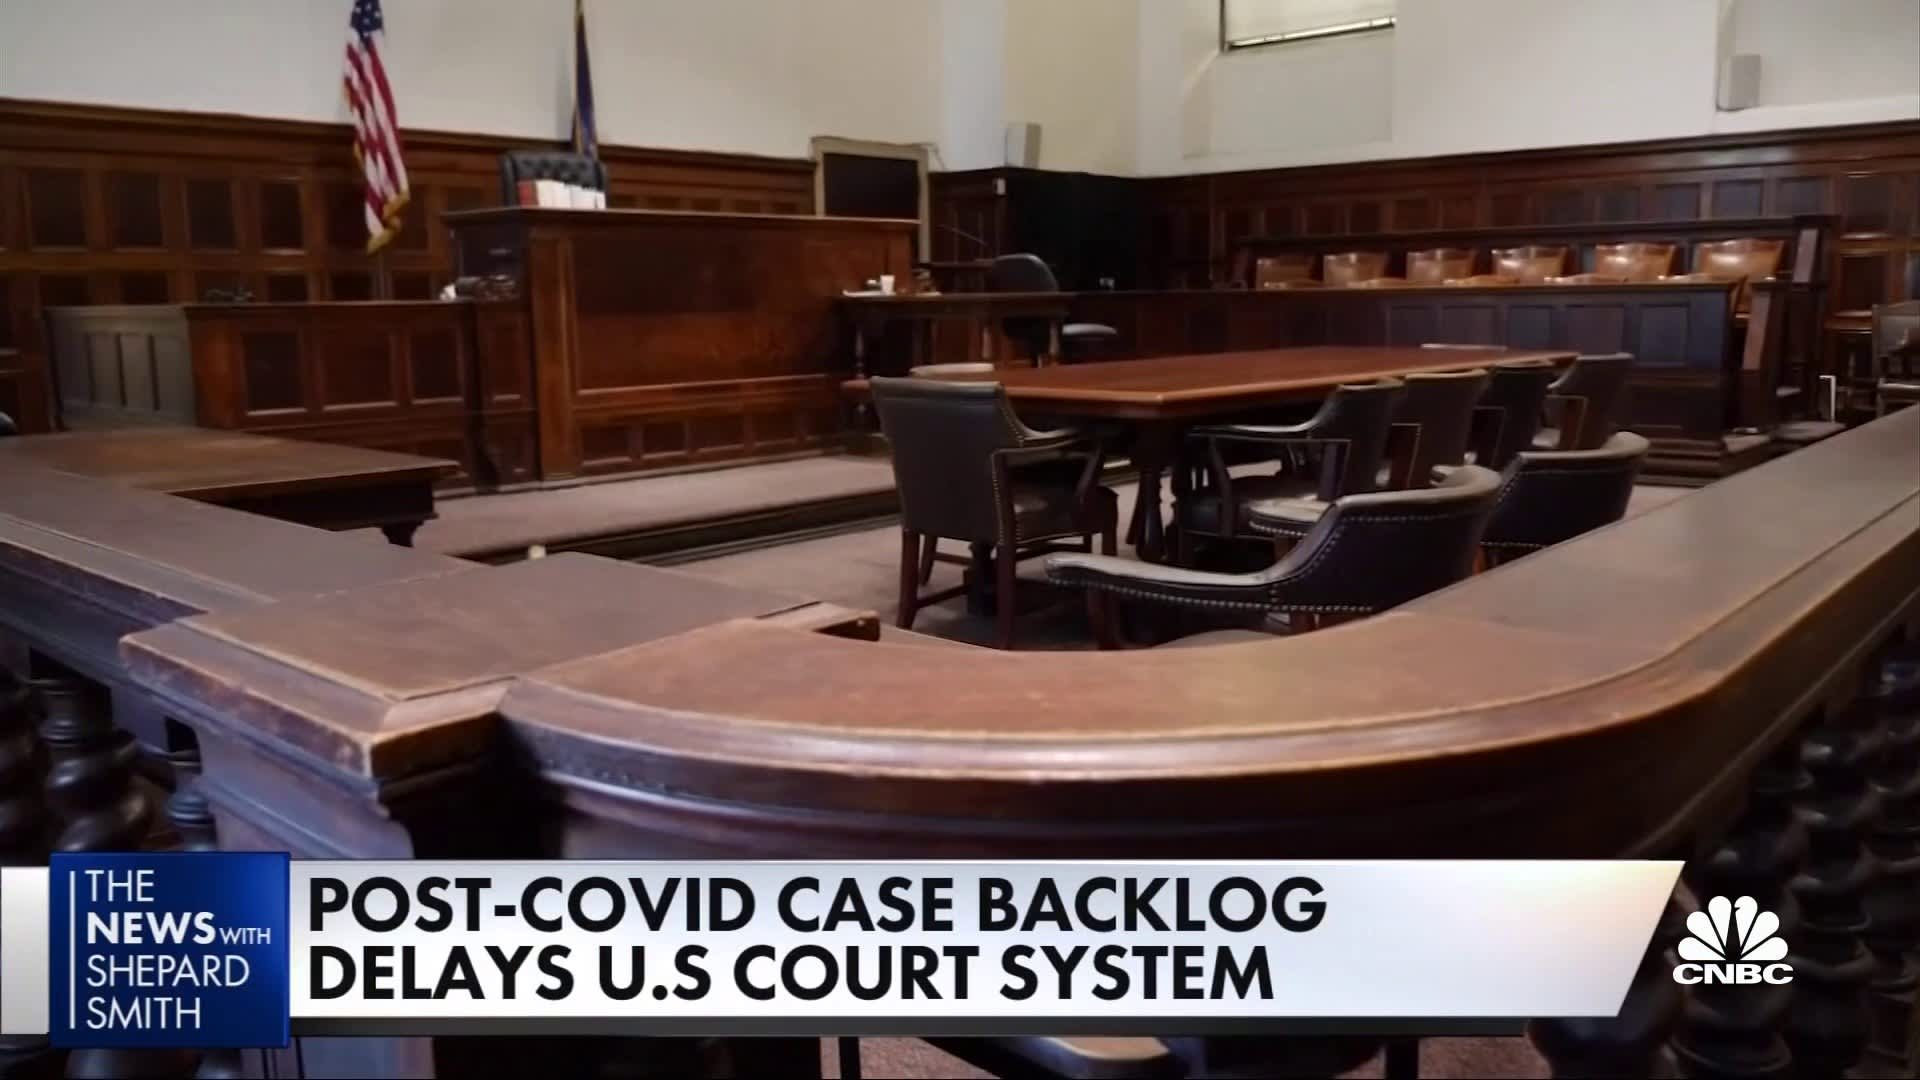 Courts struggling with massive backlog because of pandemic